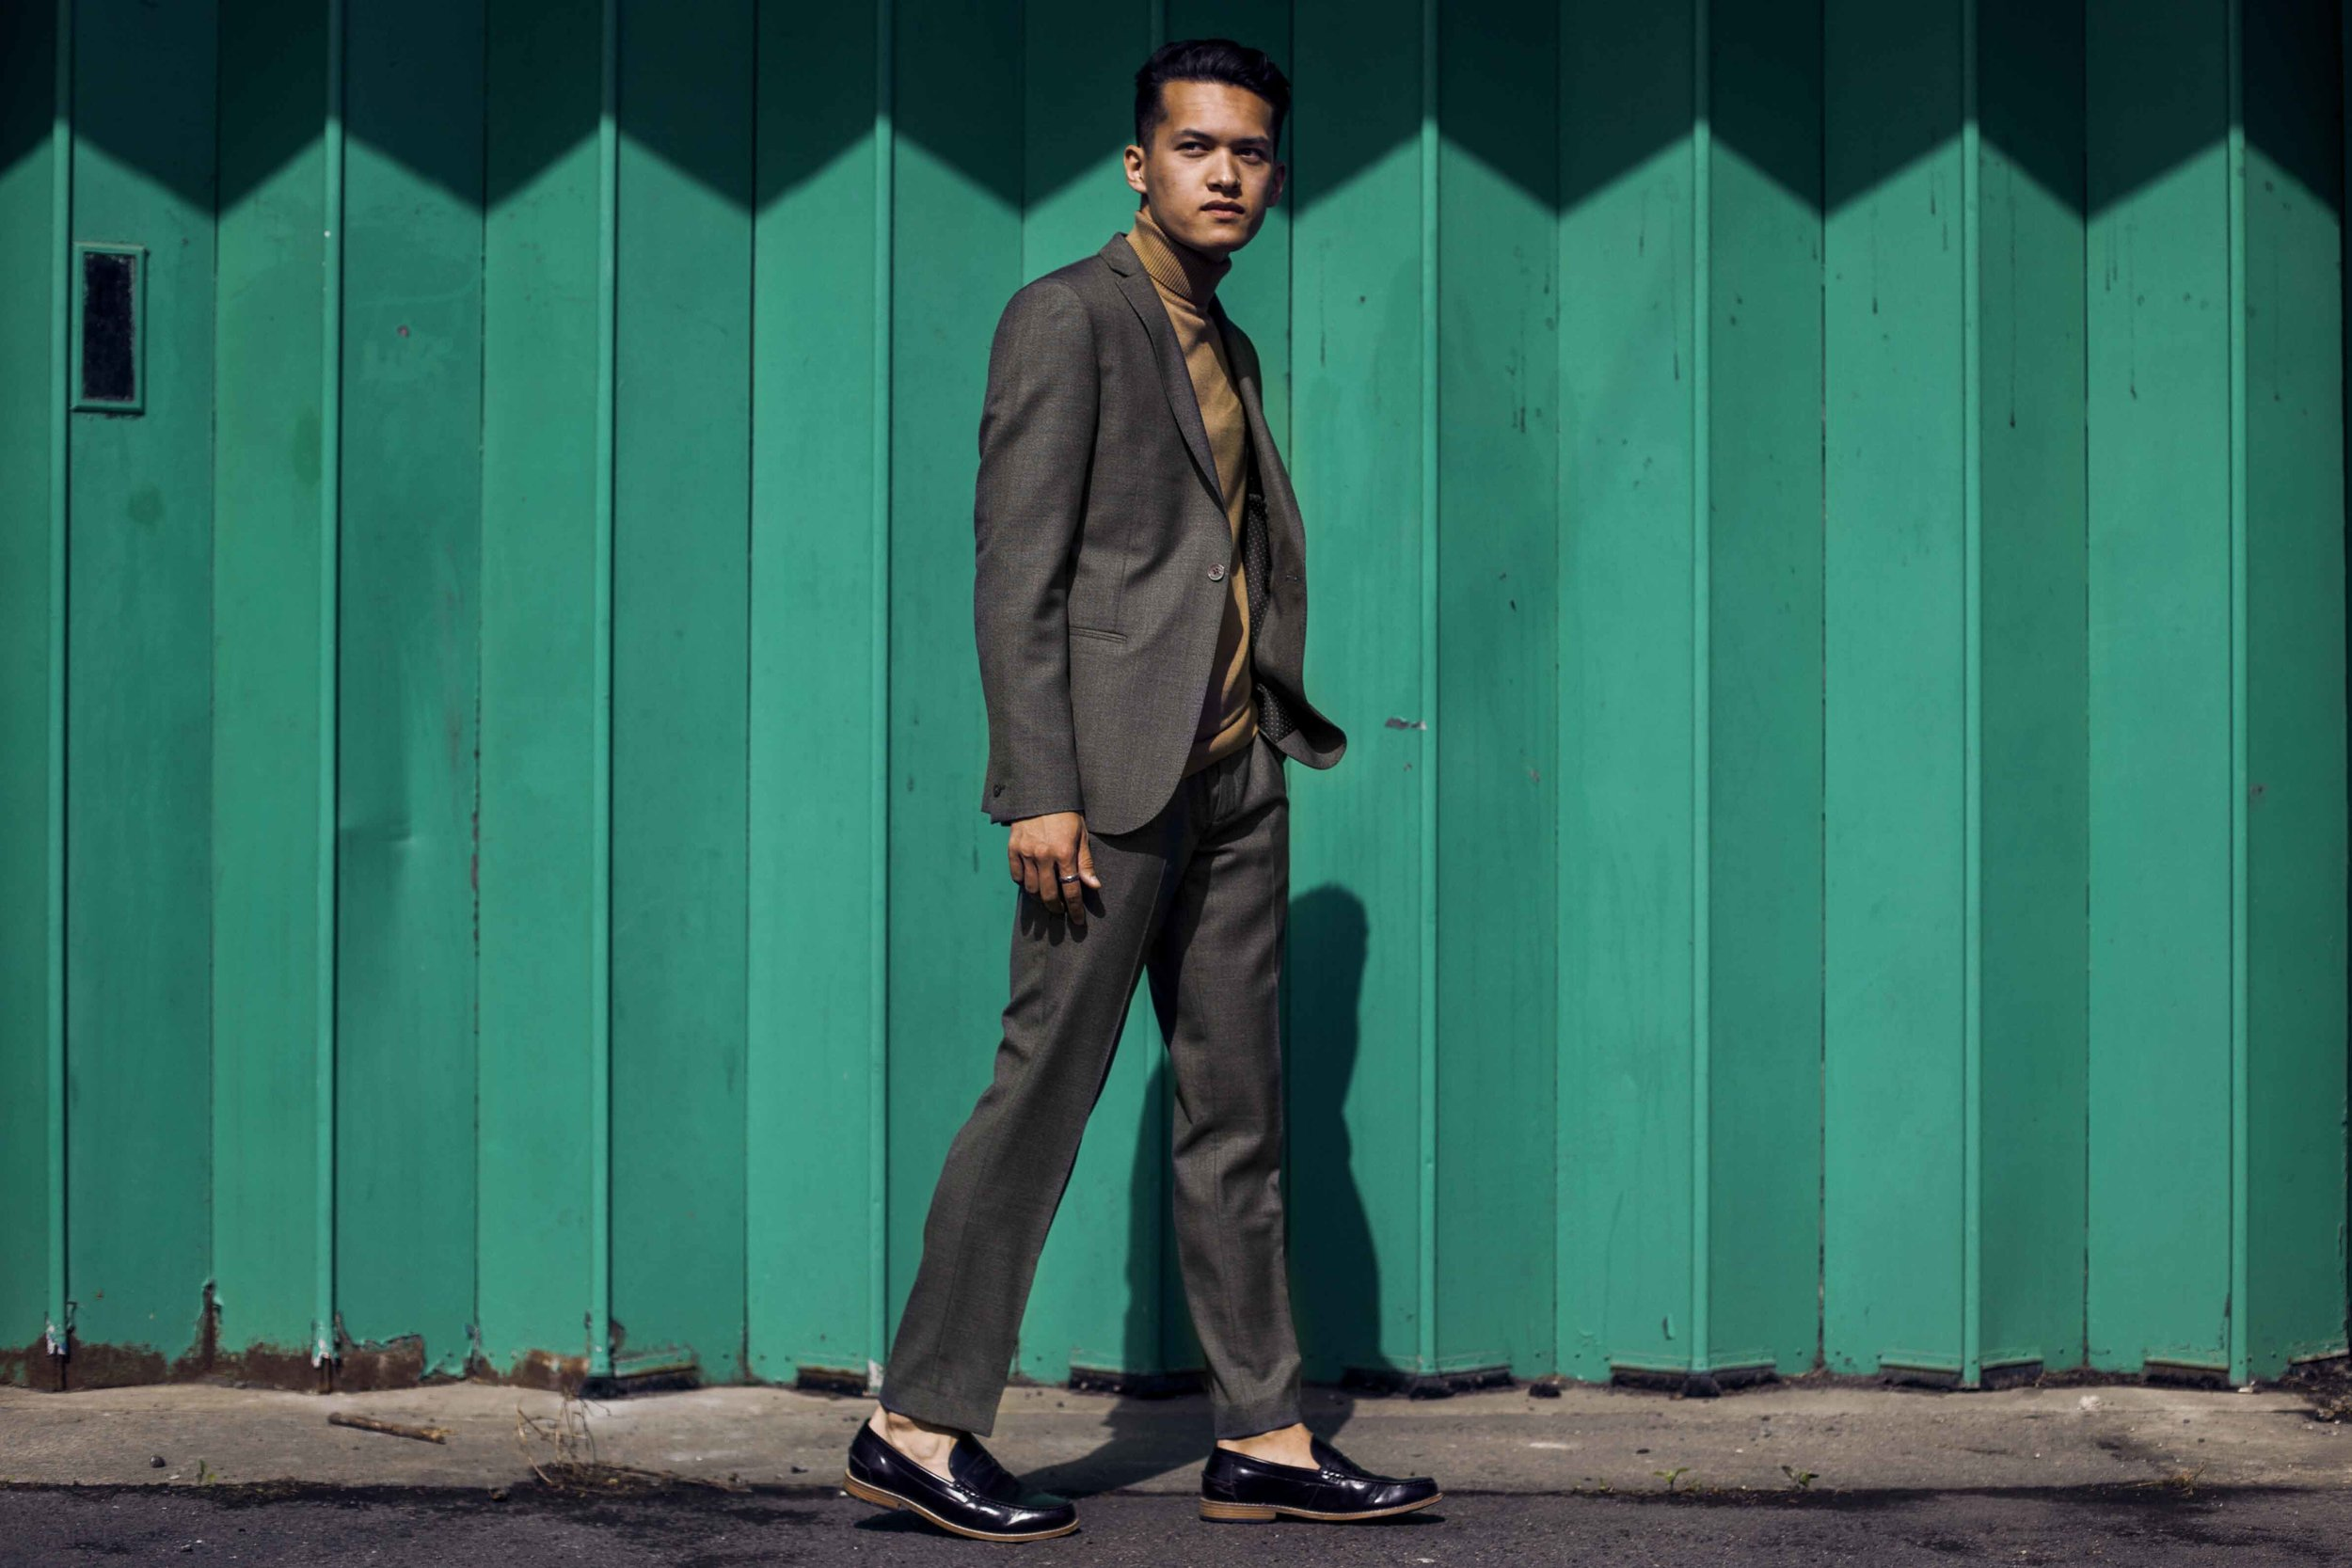 How I Style My Tm Lewin Suit Mens Fashion Lifestyle And Travel Blog